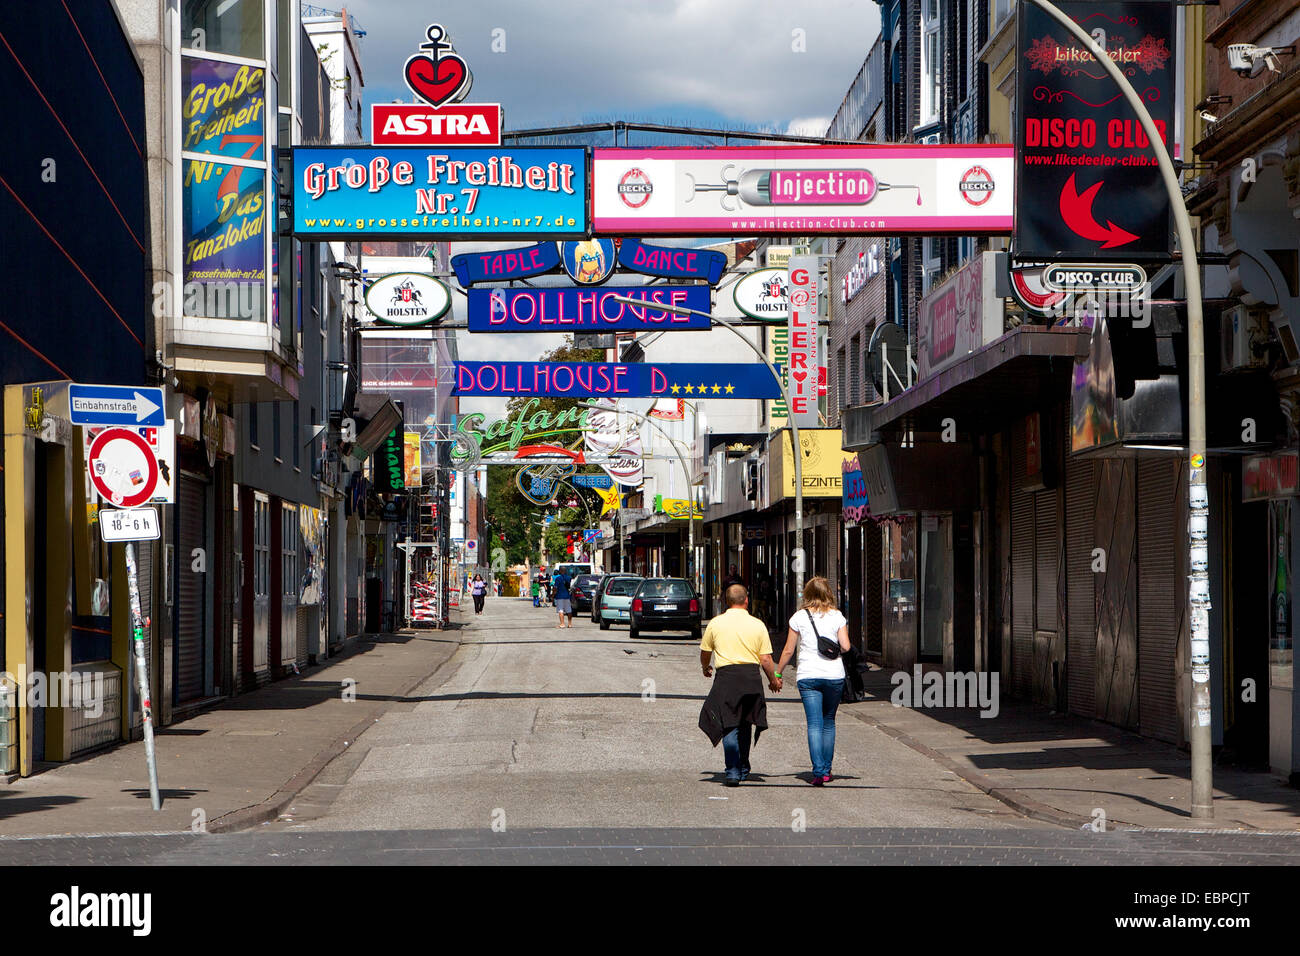 Infamous red light district street Grosse Freiheit in the St. Pauli area of Hamburg, Germany during the day. - Stock Image